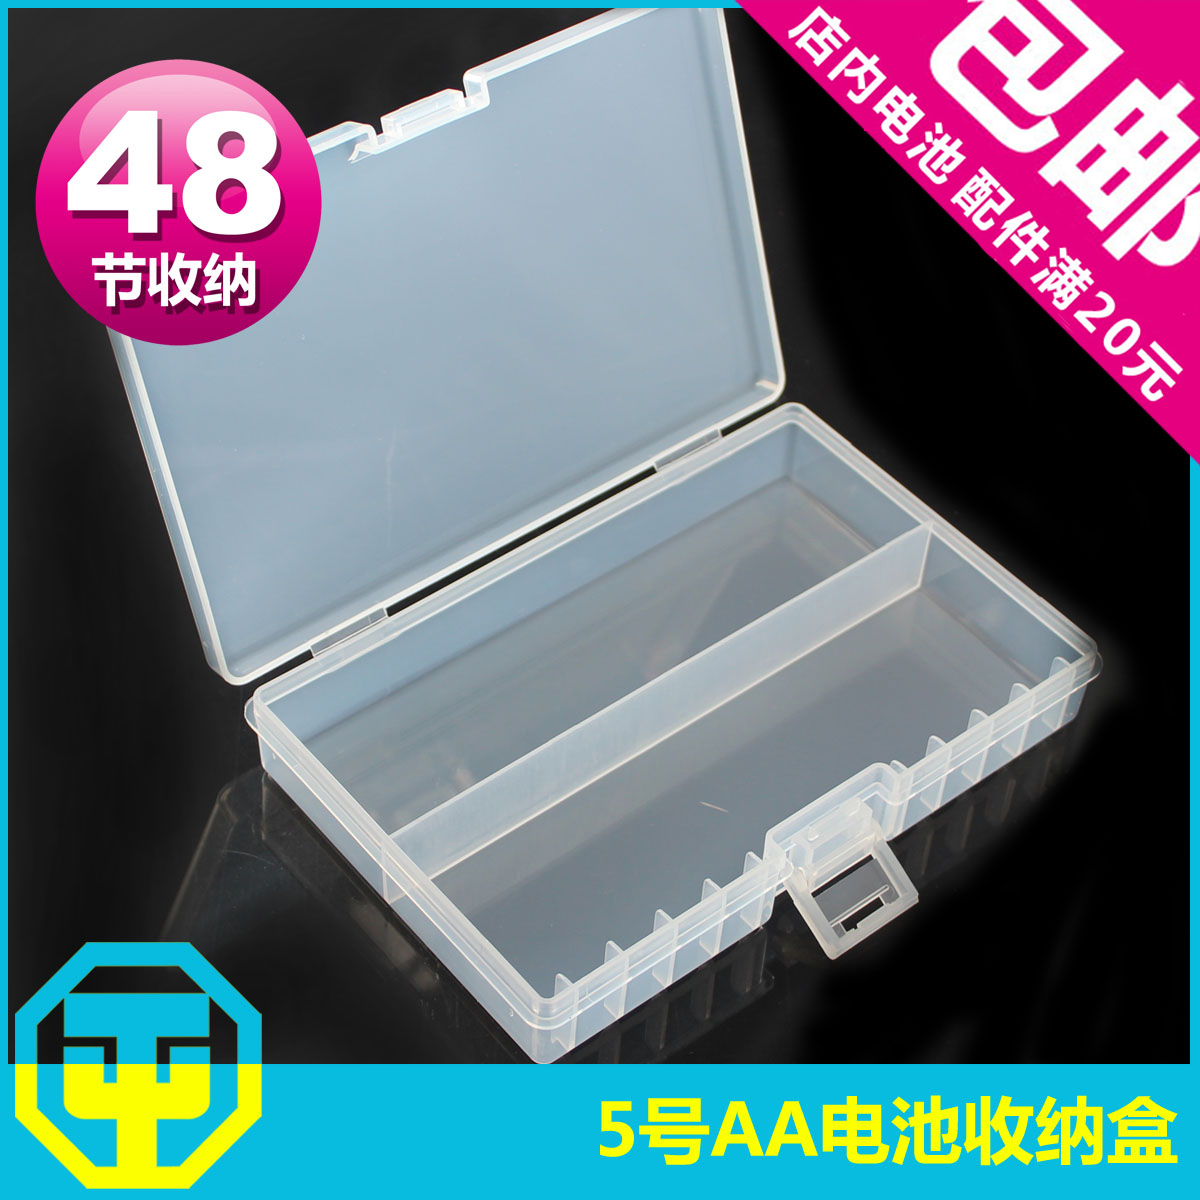 The battery storage box can be placed on the 5 AA battery 48 section folding port & USD 7.27] The battery storage box can be placed on the 5 AA battery ...